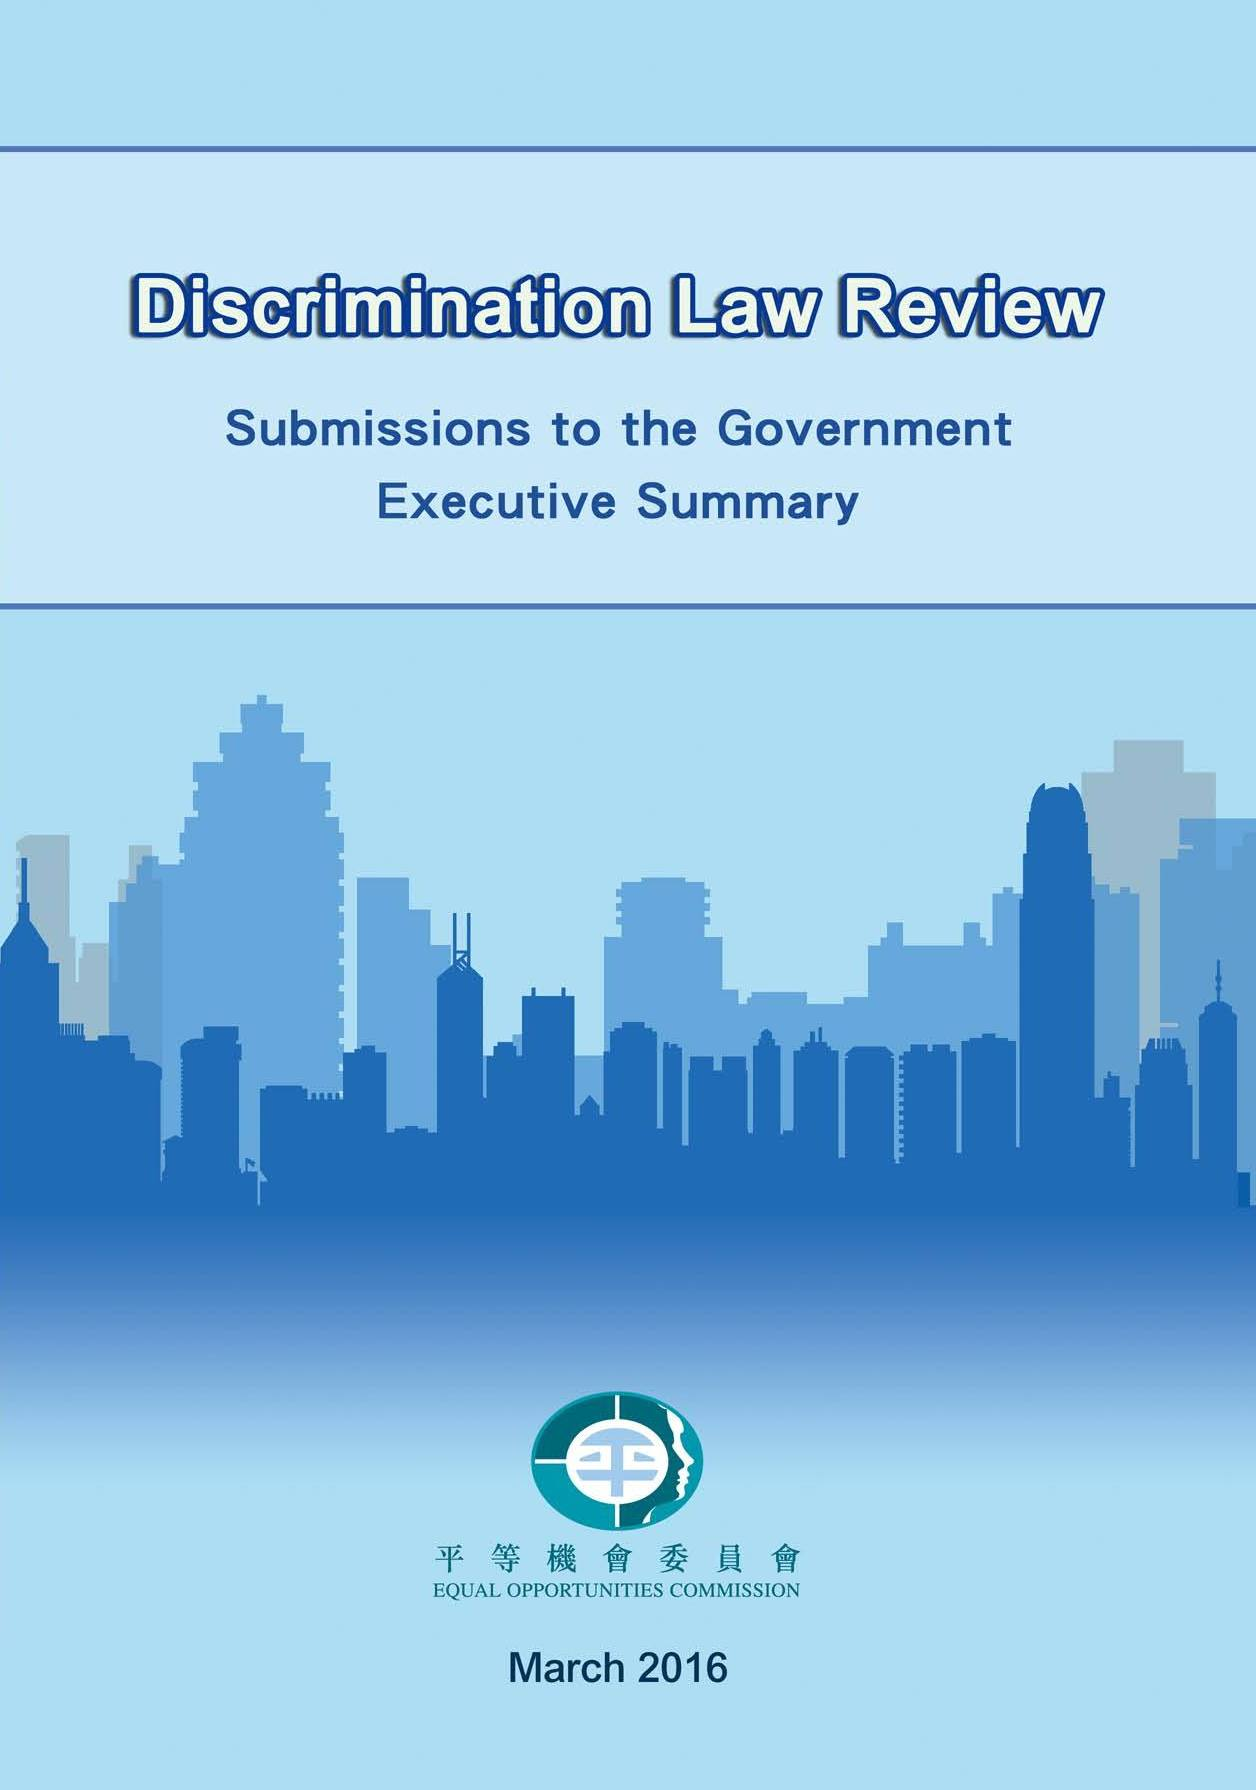 Cover of the Executive Summary of the EOC's Submission to the Government